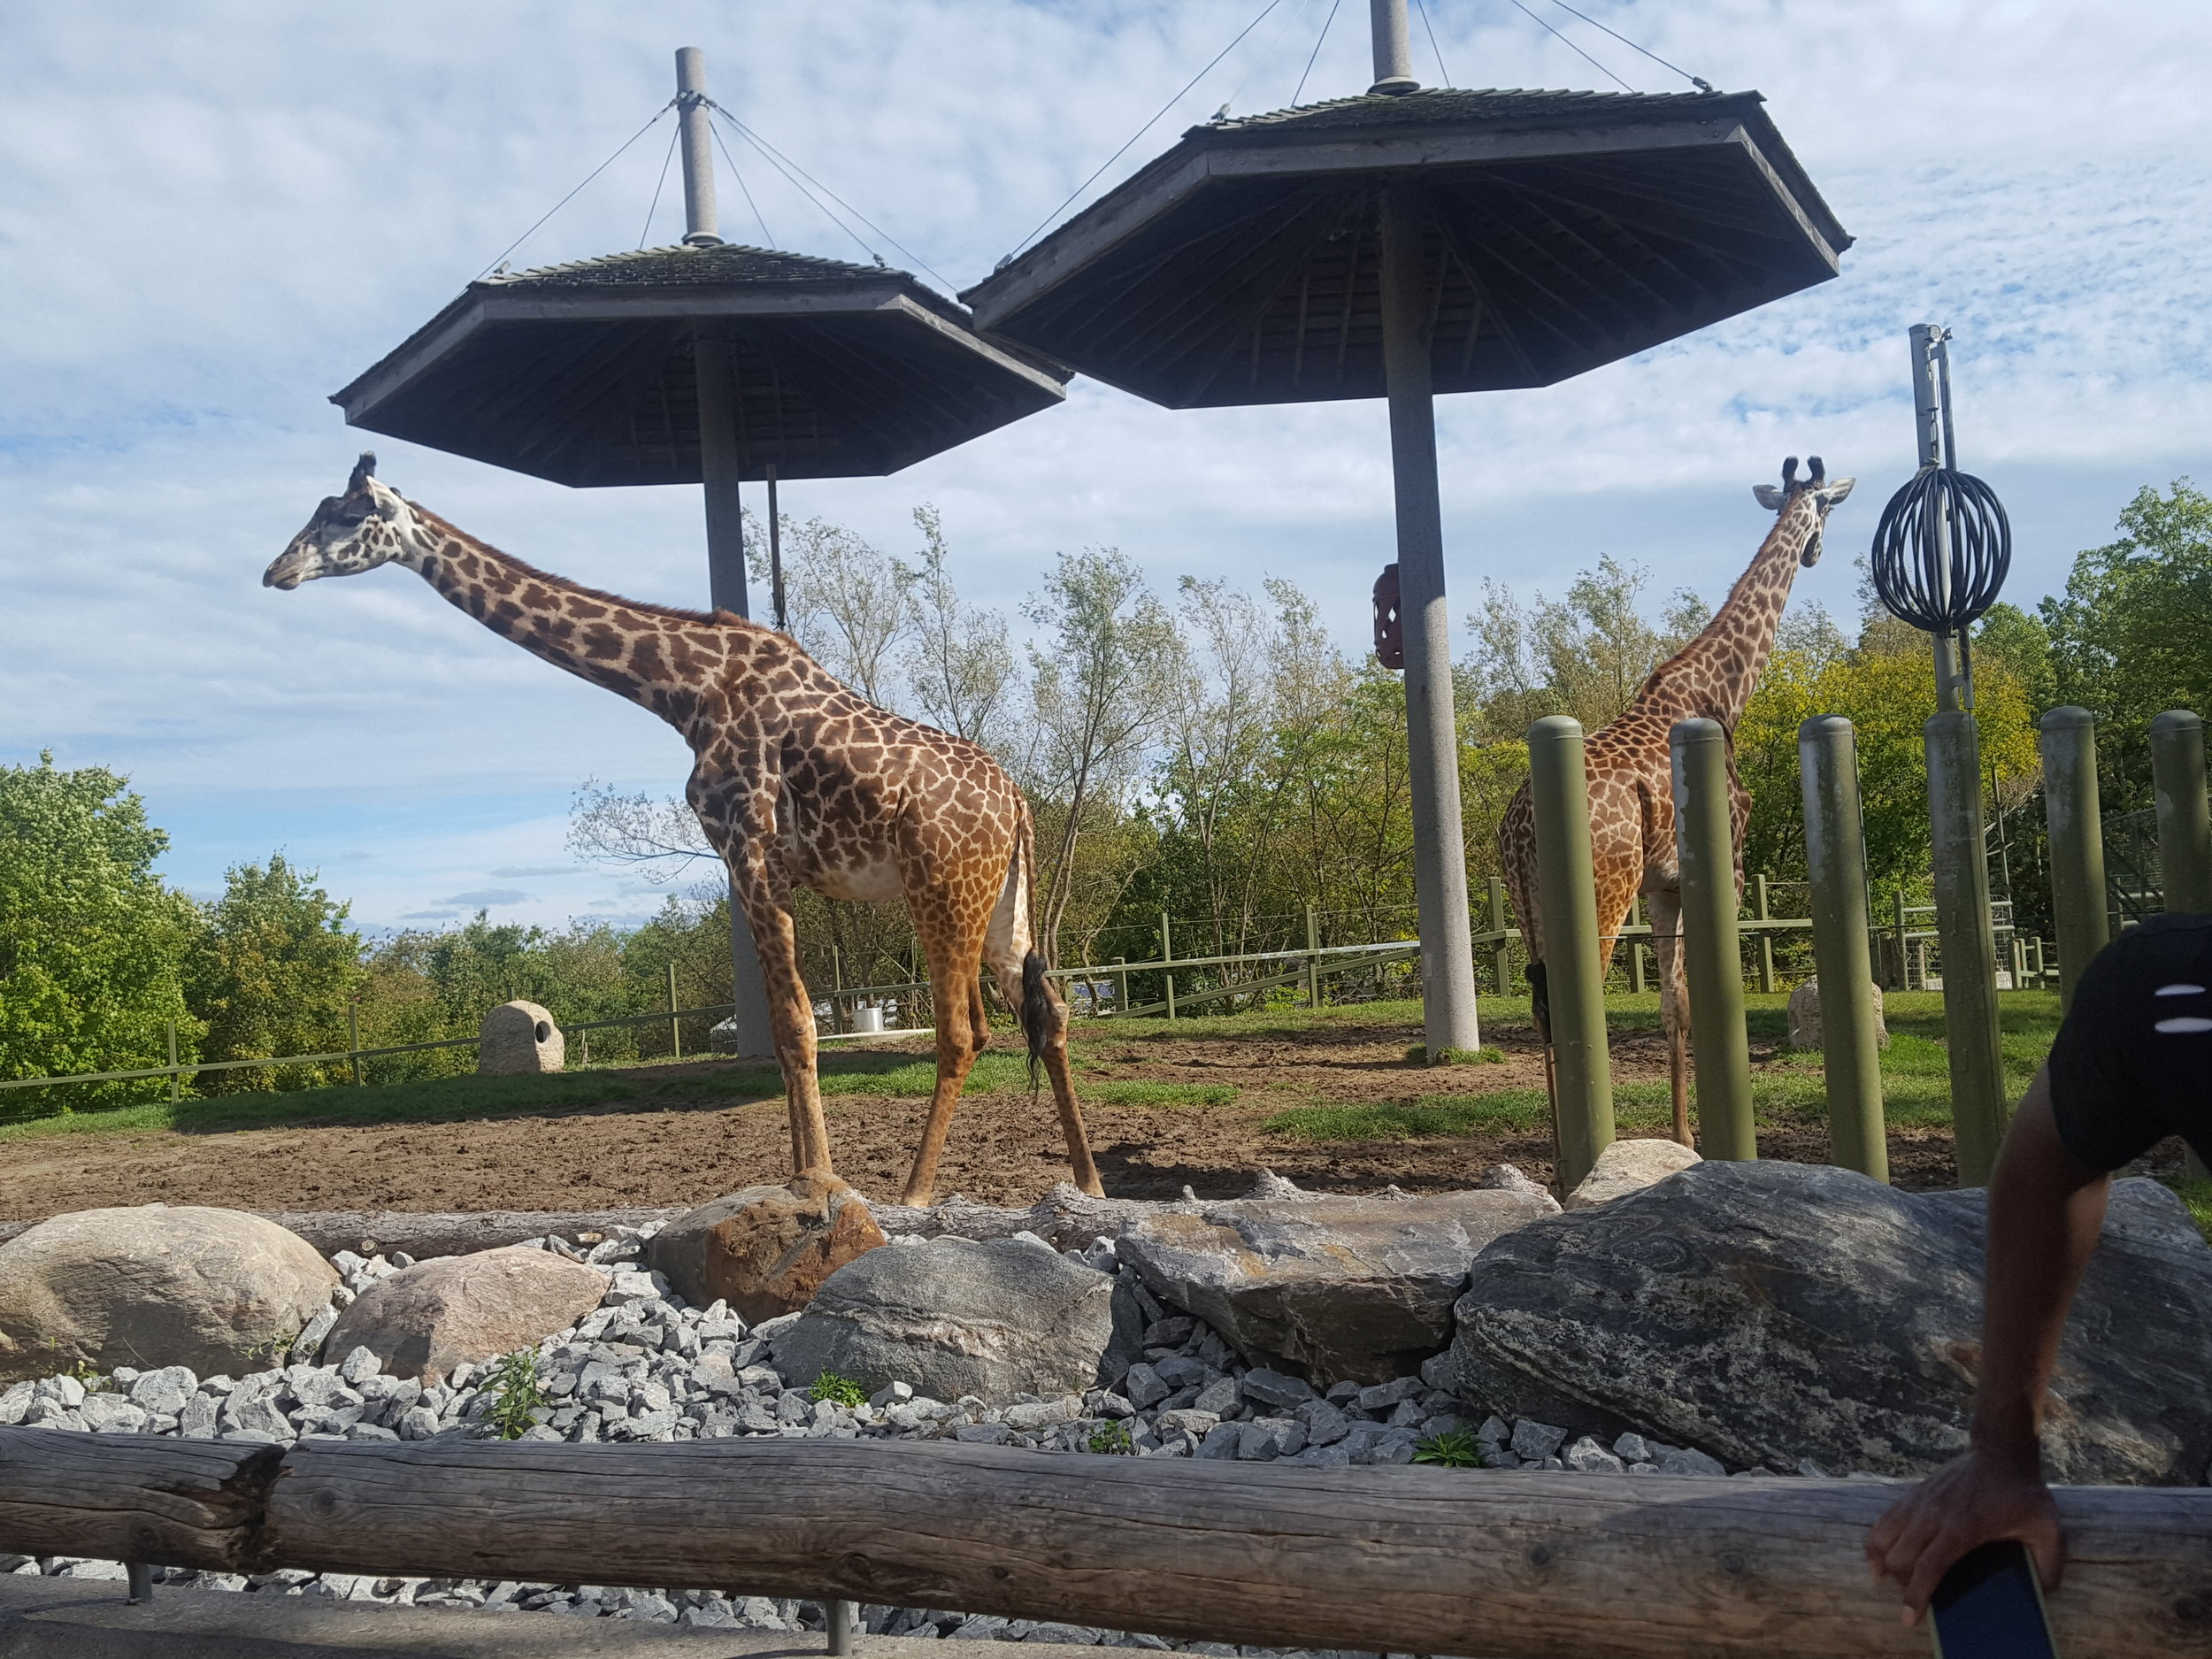 Giraffes at the Toronto Zoo